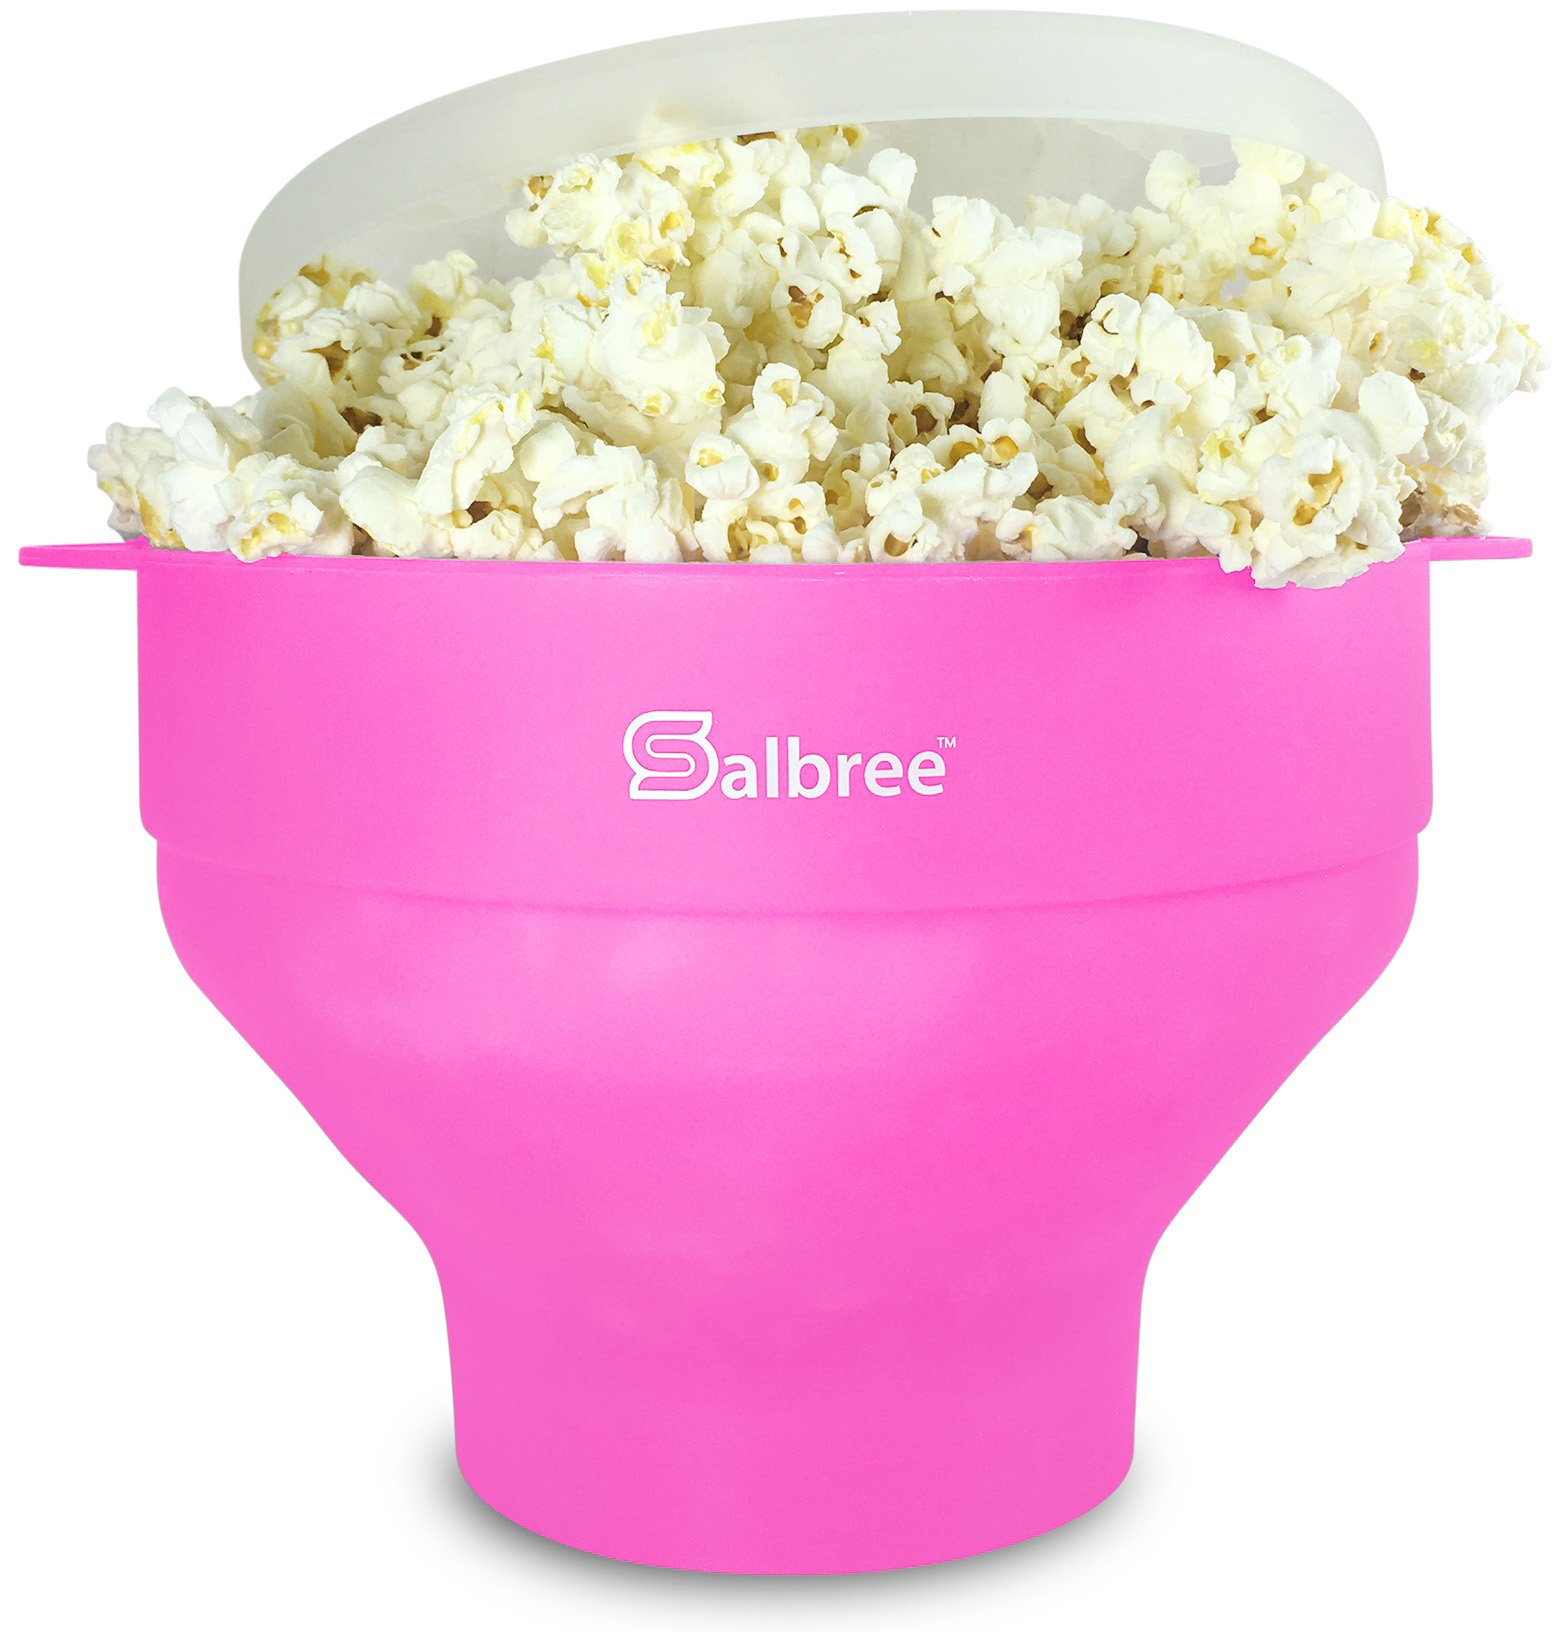 The Original Salbree Microwave Popcorn Popper, Silicone Popcorn Maker, Collapsible Bowl BPA Free - 14 Colors Available (Pink)